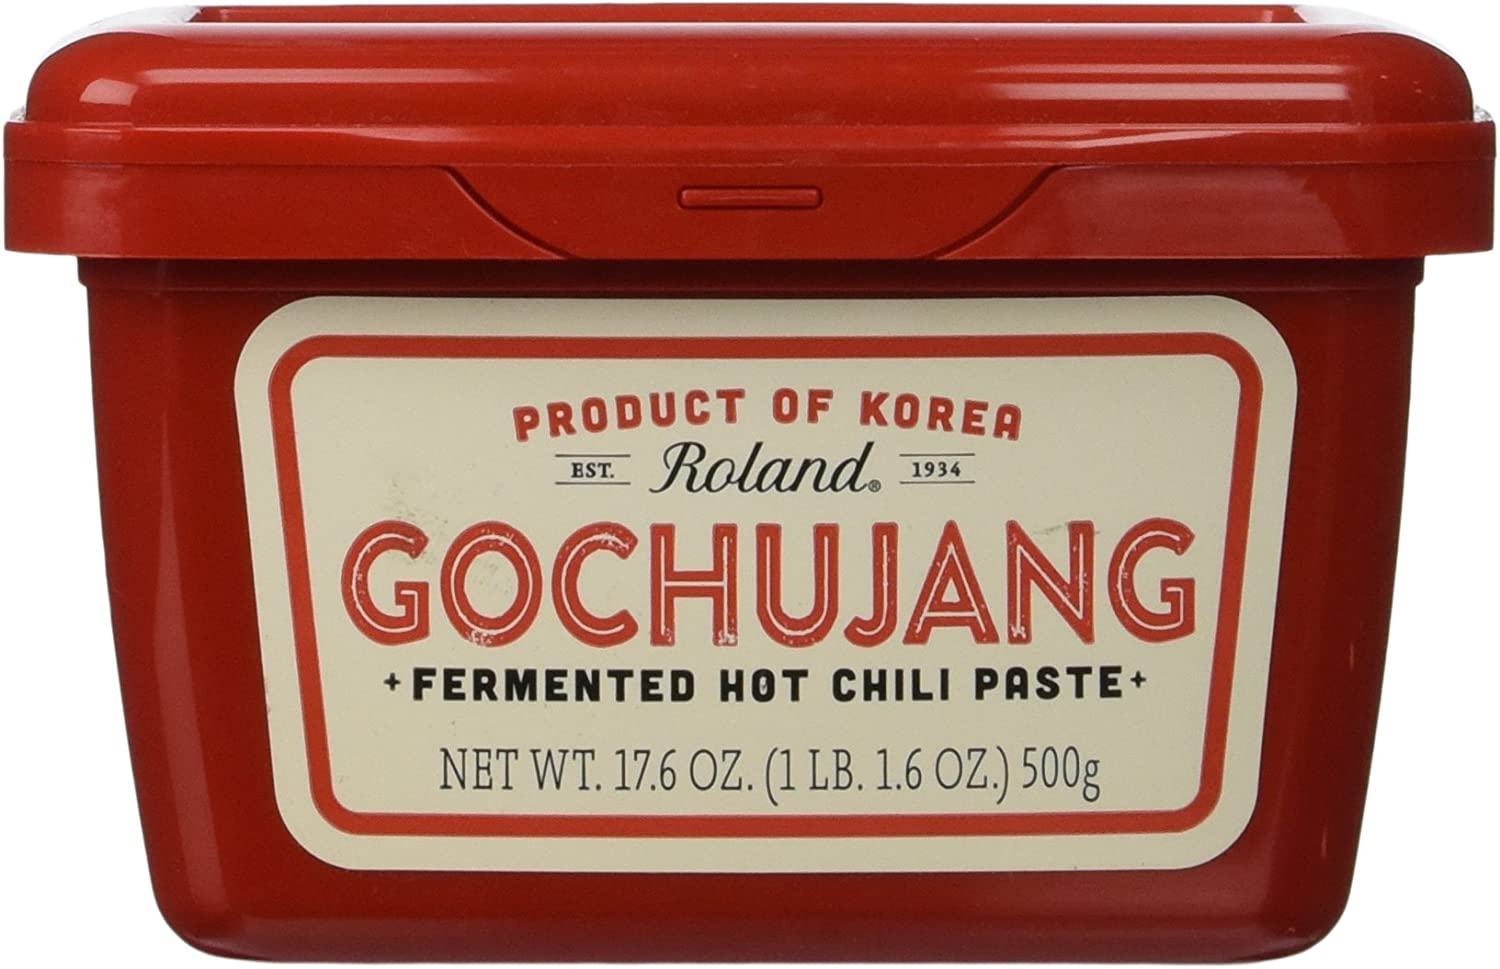 Roland Fermented Hot Chili Paste, Gochujang, 17.6 Ounce